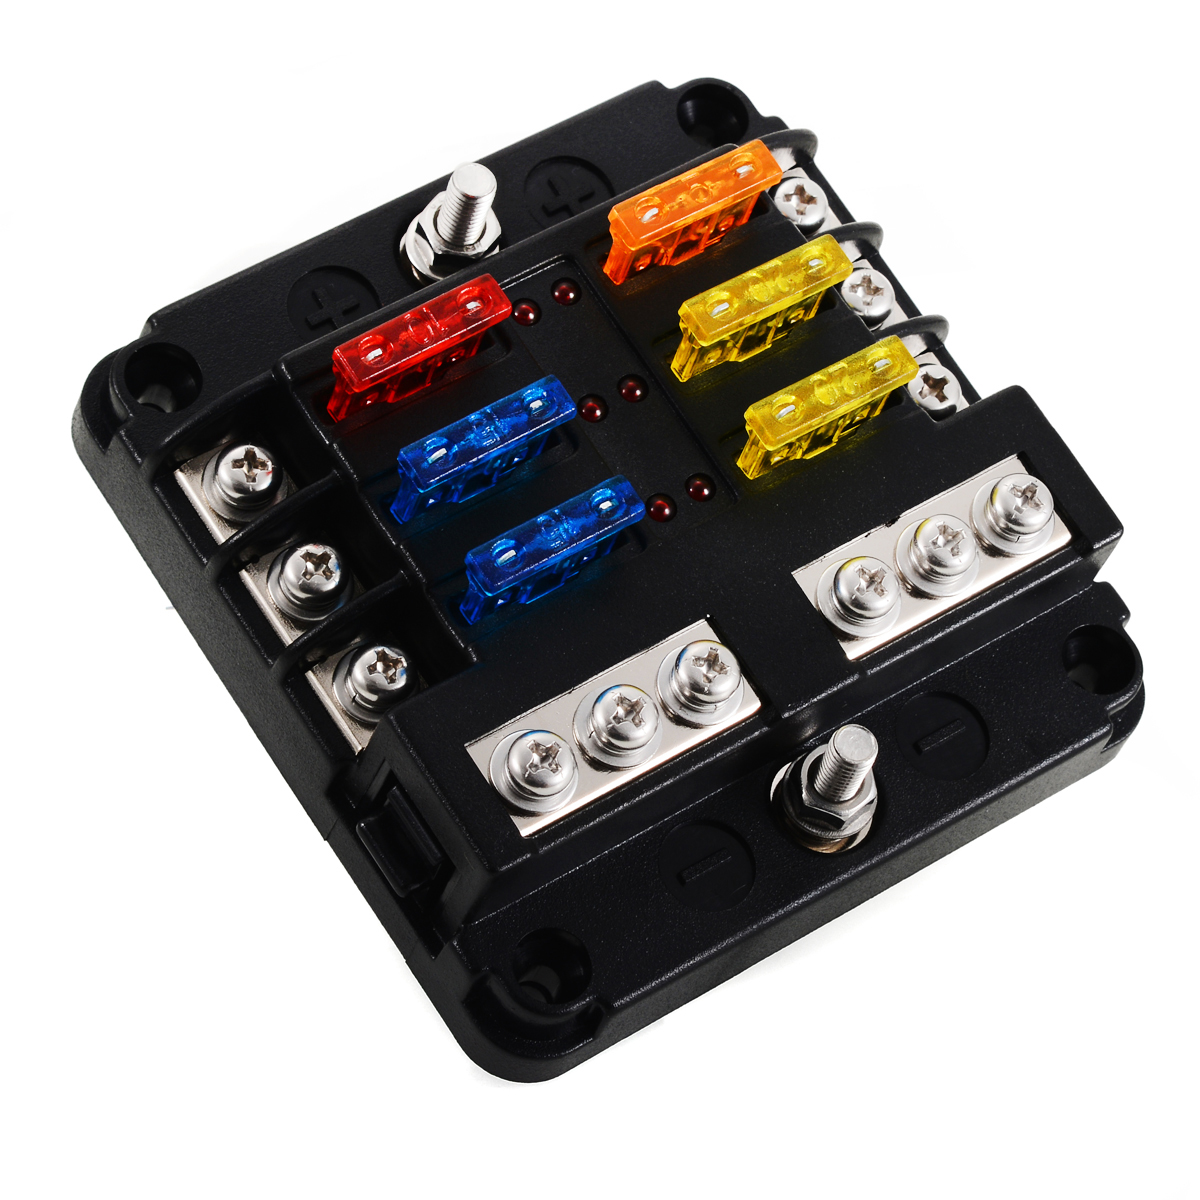 small resolution of 6 way blade fuse holder box block case 12v 24v car truck marine bus rv van mayitr for car boat marine caravan truck